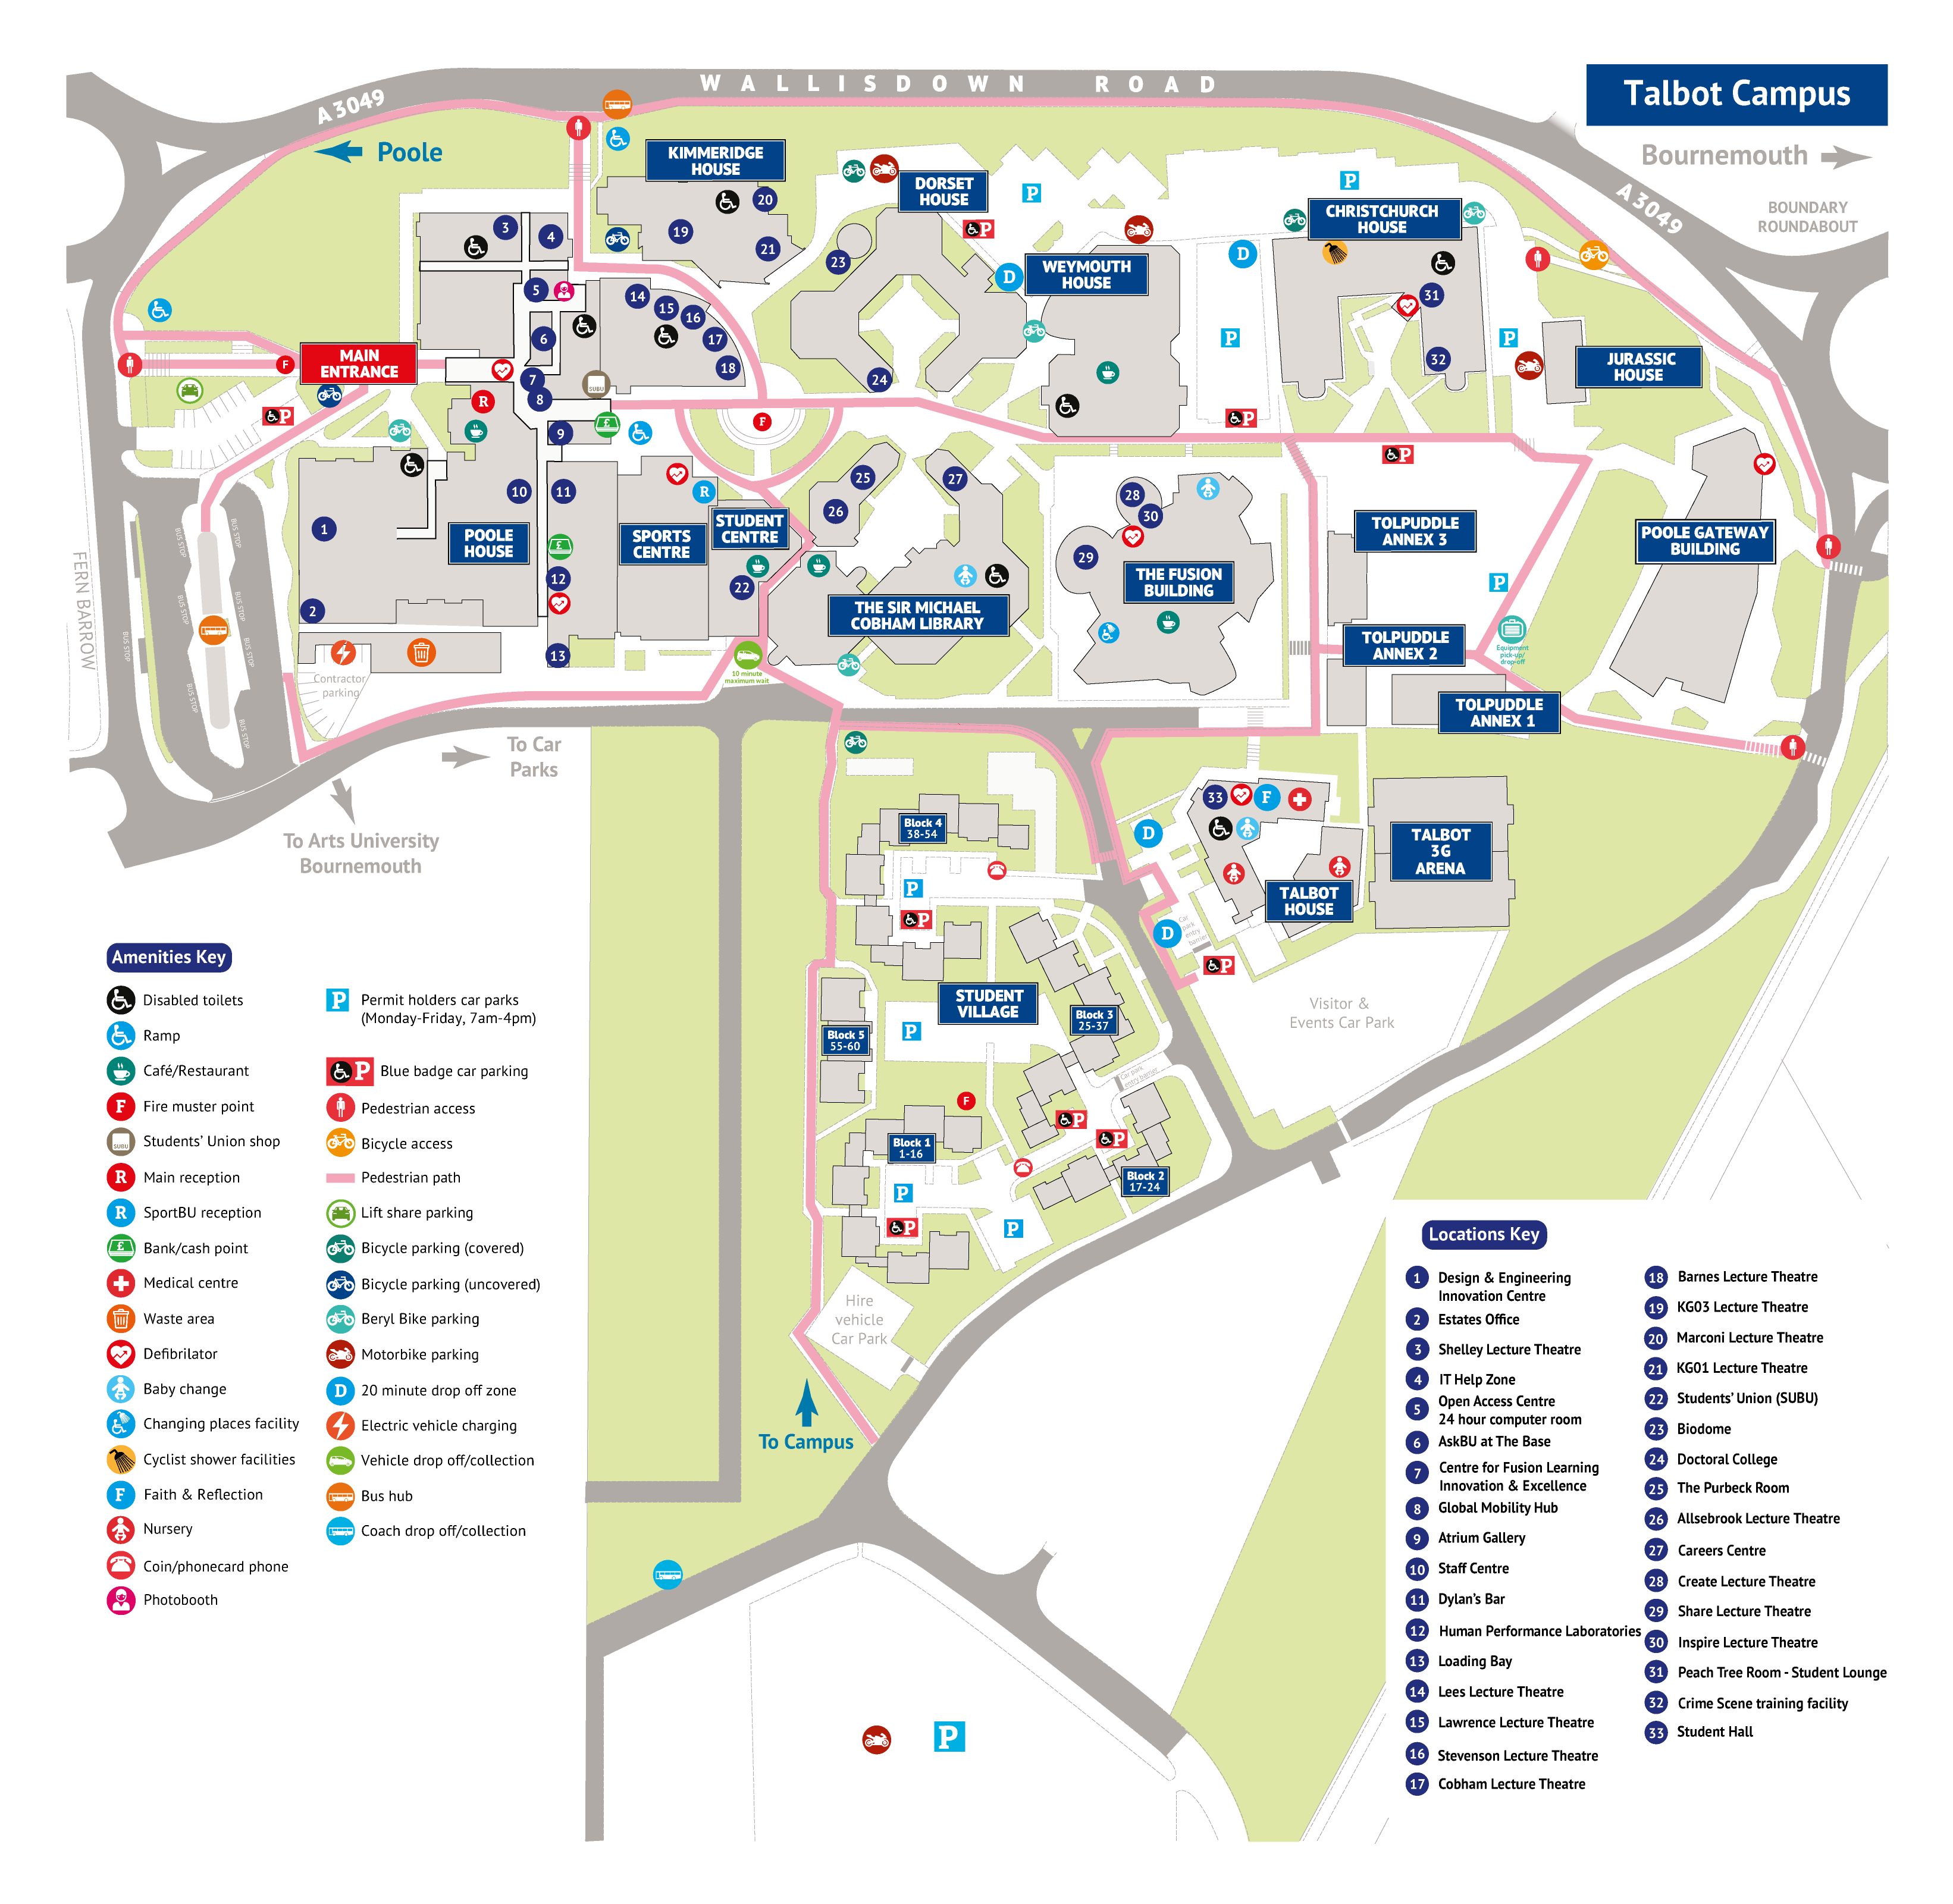 map of Talbot Campus with points on interest. Contact formats@bournemouth.ac.uk if you require this in braile or large print.